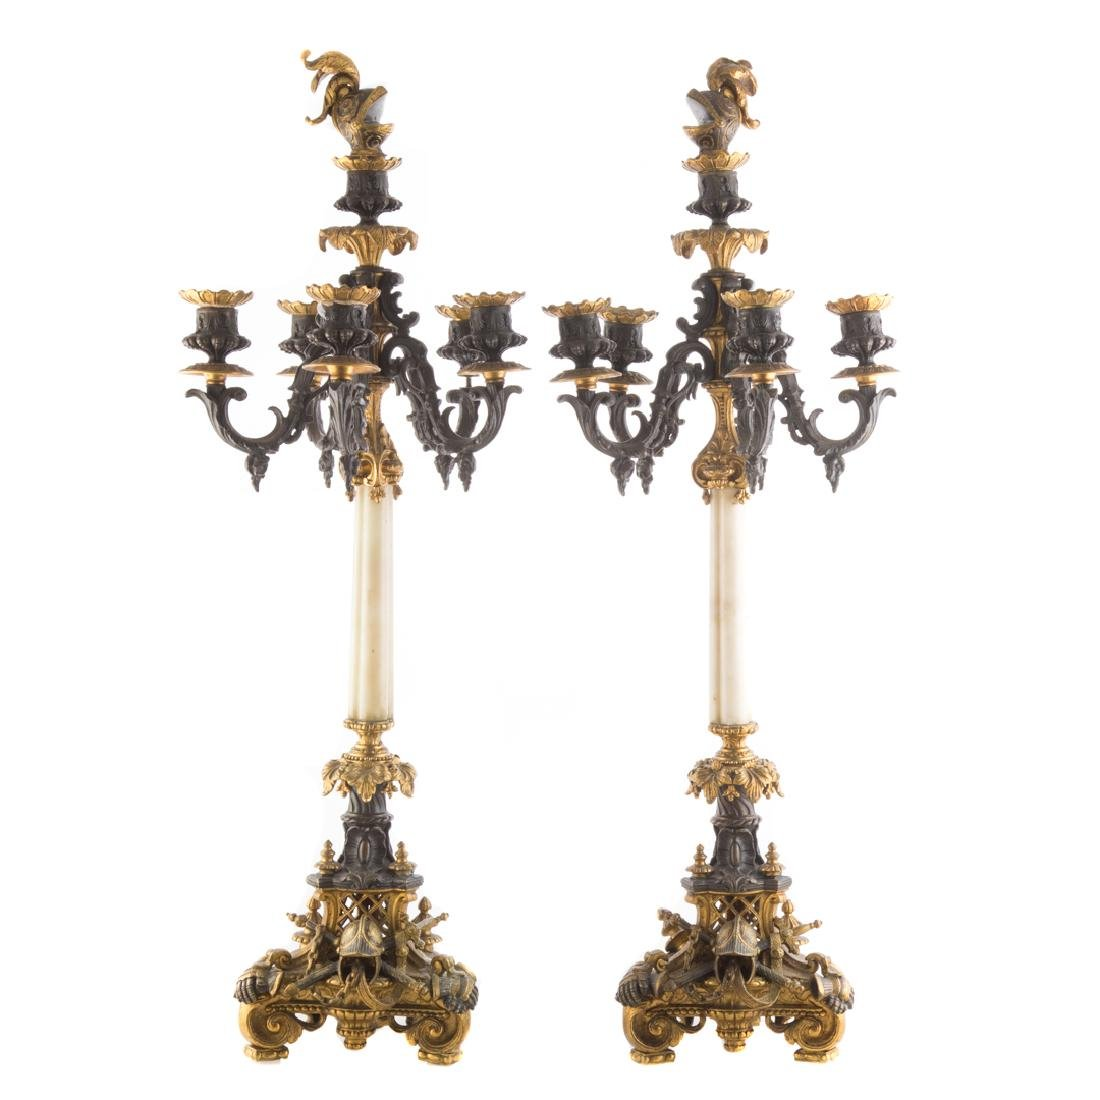 Pair French Renaissance Revival candelabra